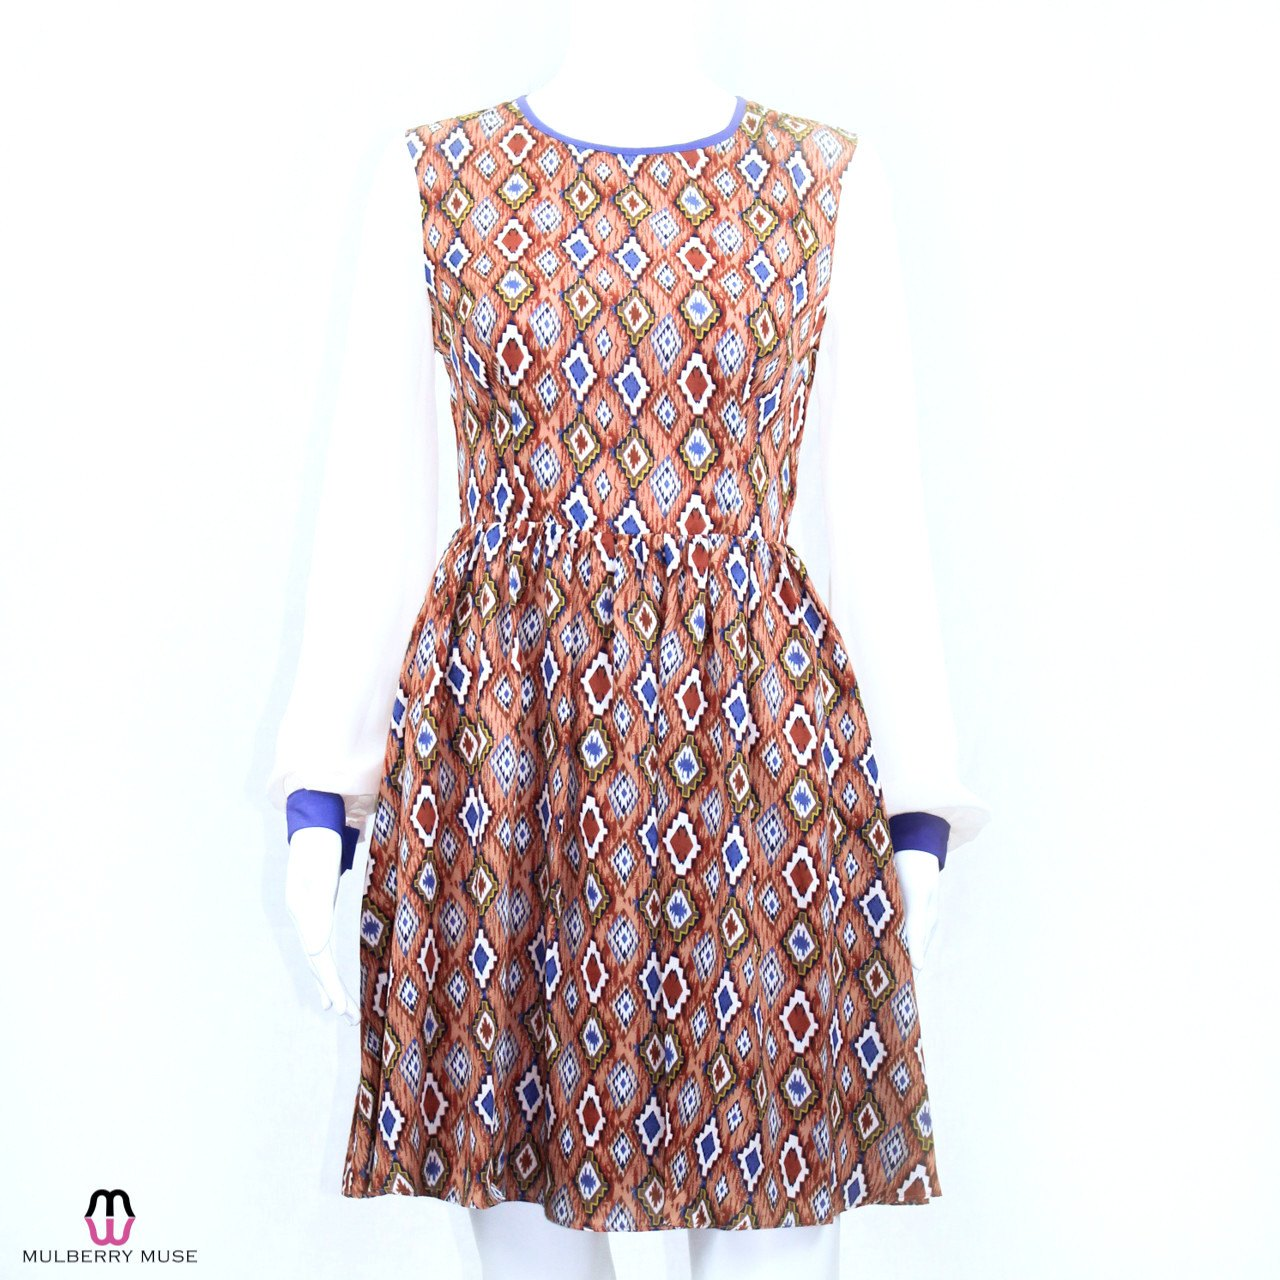 Ark & Co Chiffon Sleeve Print Dress Medium Brown Multi Muse Boutique Outlet